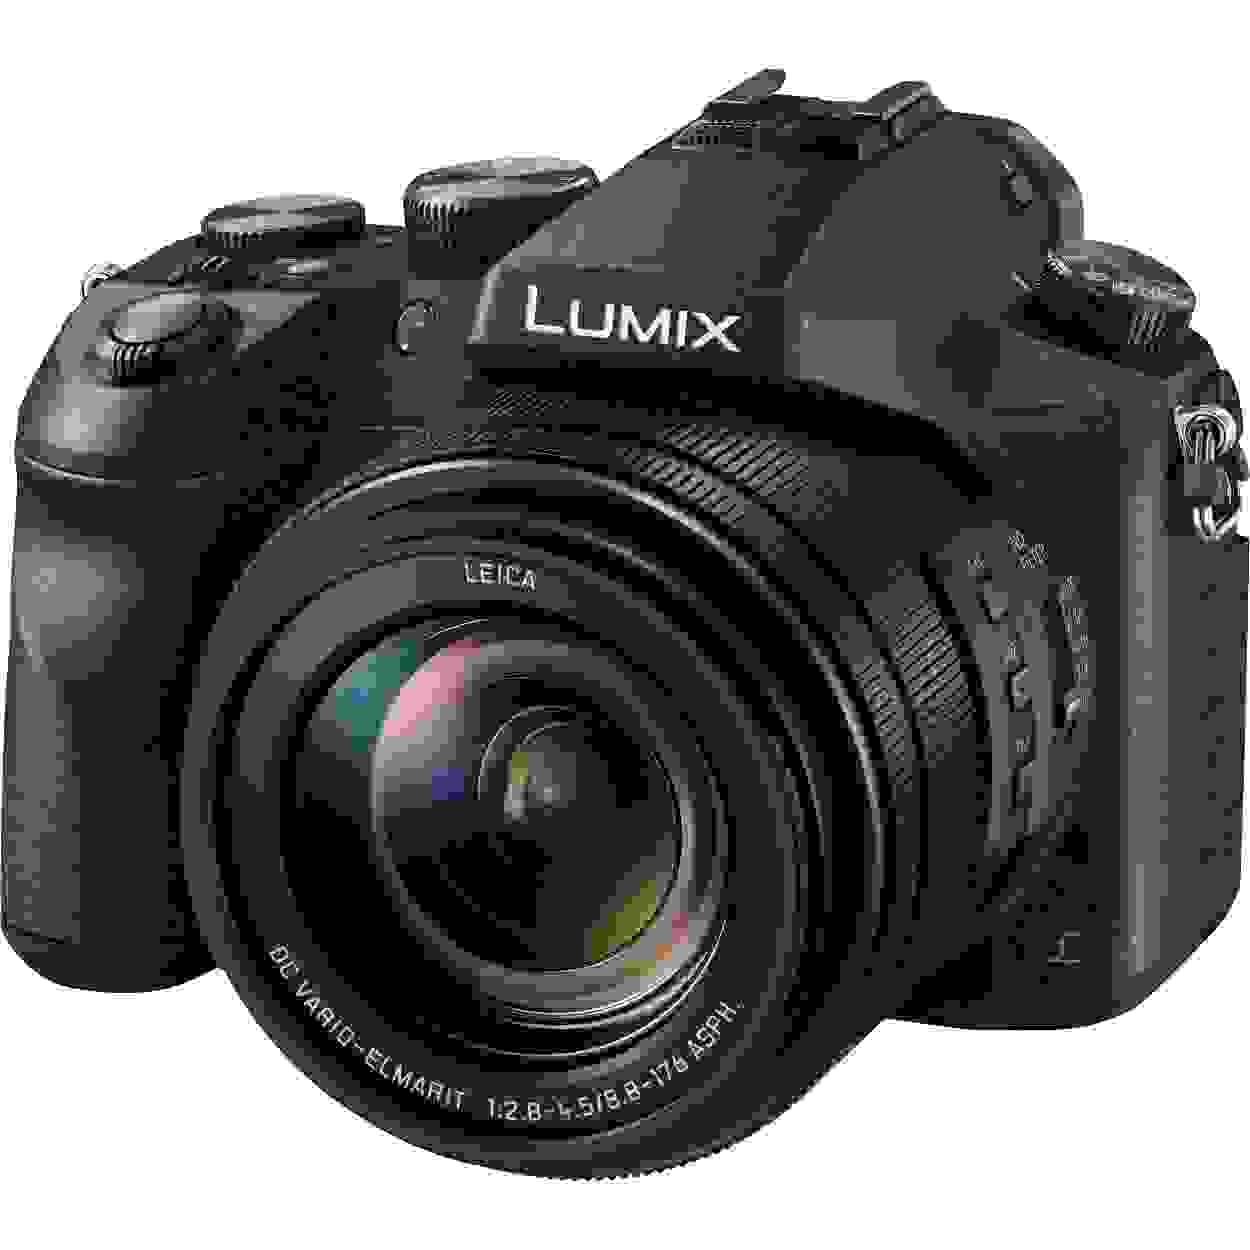 Panasonic camera with 24.2 MP sensor